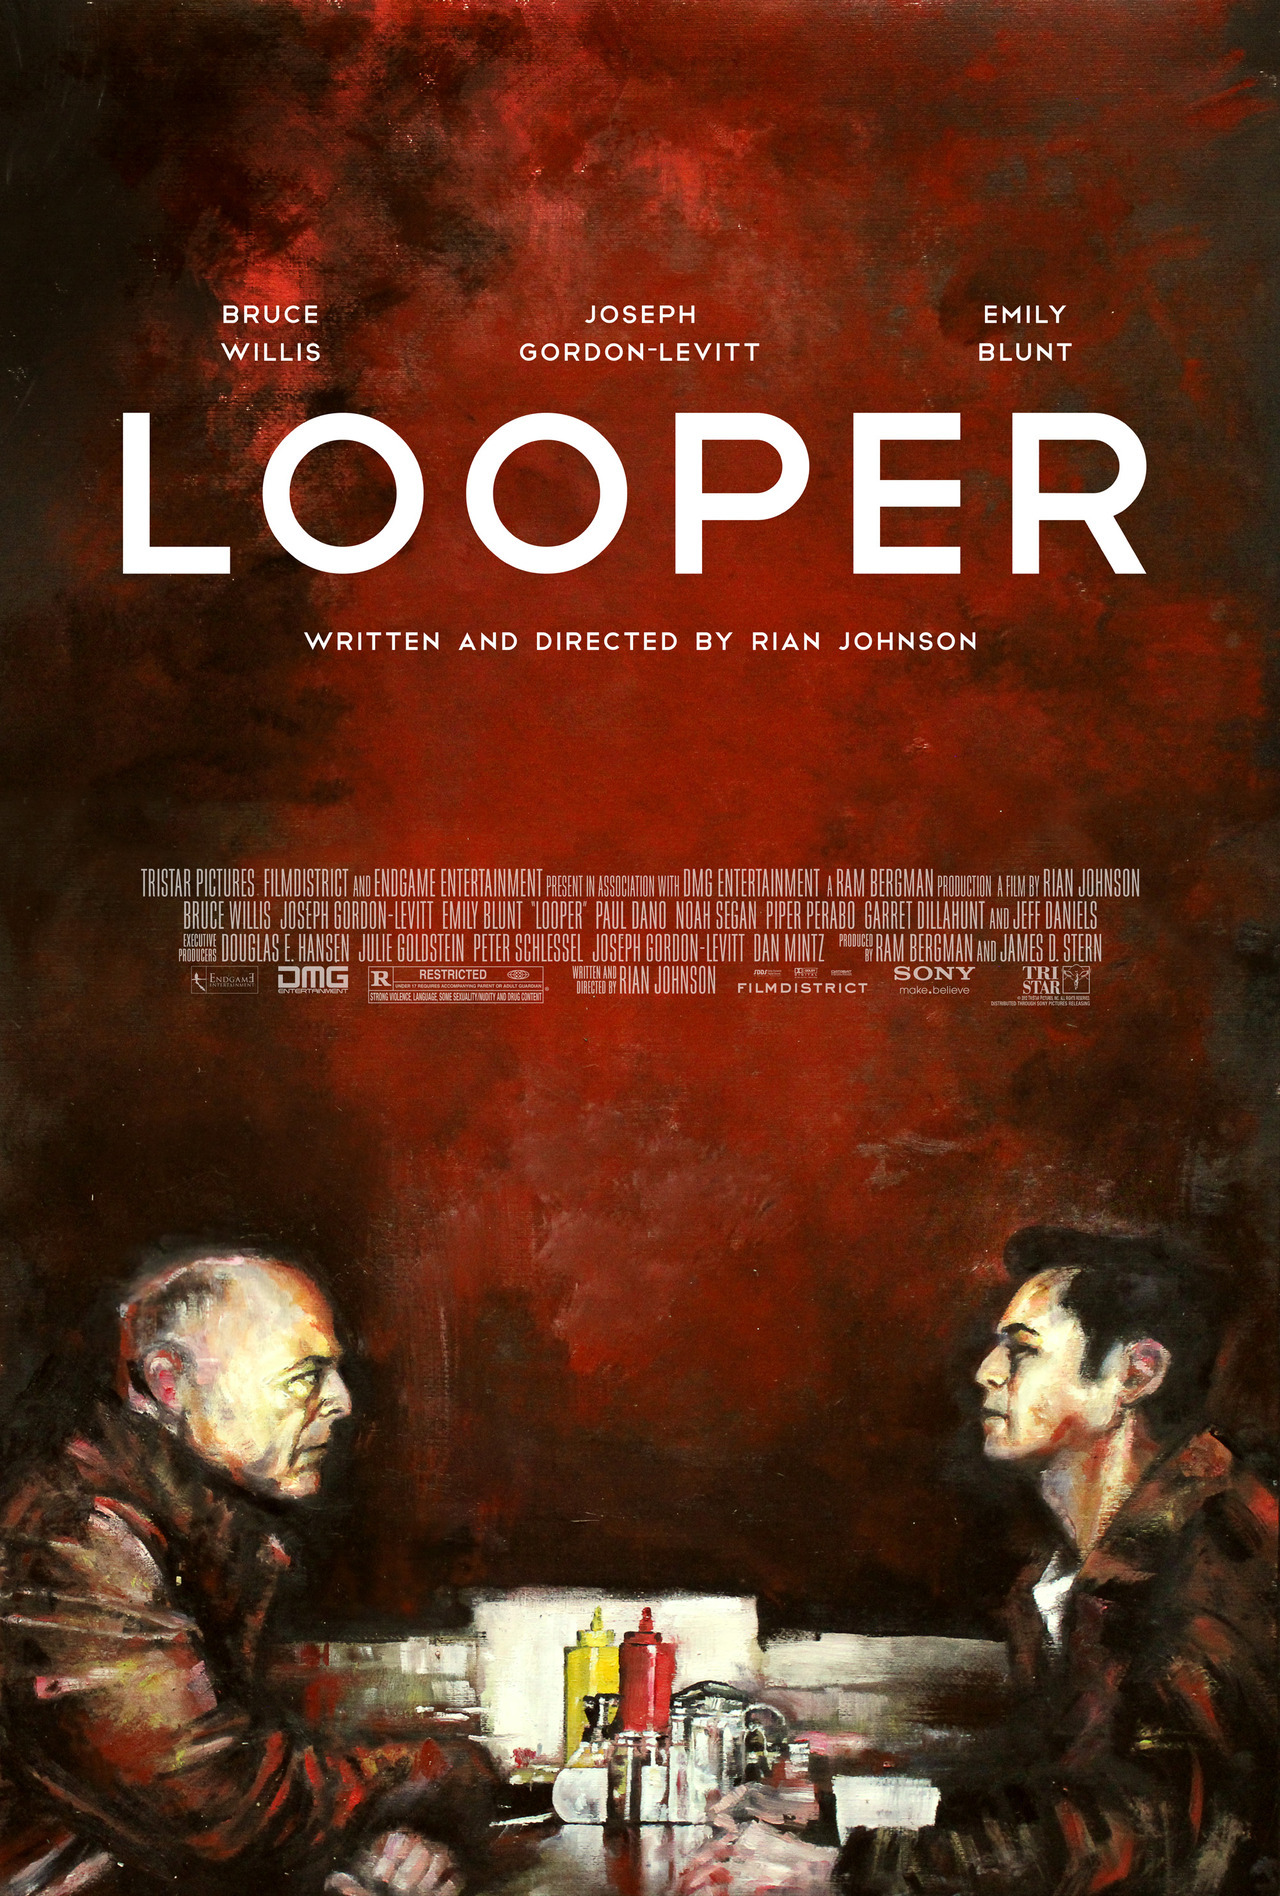 hitrecordjoe:  loopermovie:  Zach Johnson's poster for Looper.  Available for purchase here.  Beautifully hand painted @LOOPERmovie poster.  By Rian's cousin Zach @zucherman.  Oh, those Johnsons.